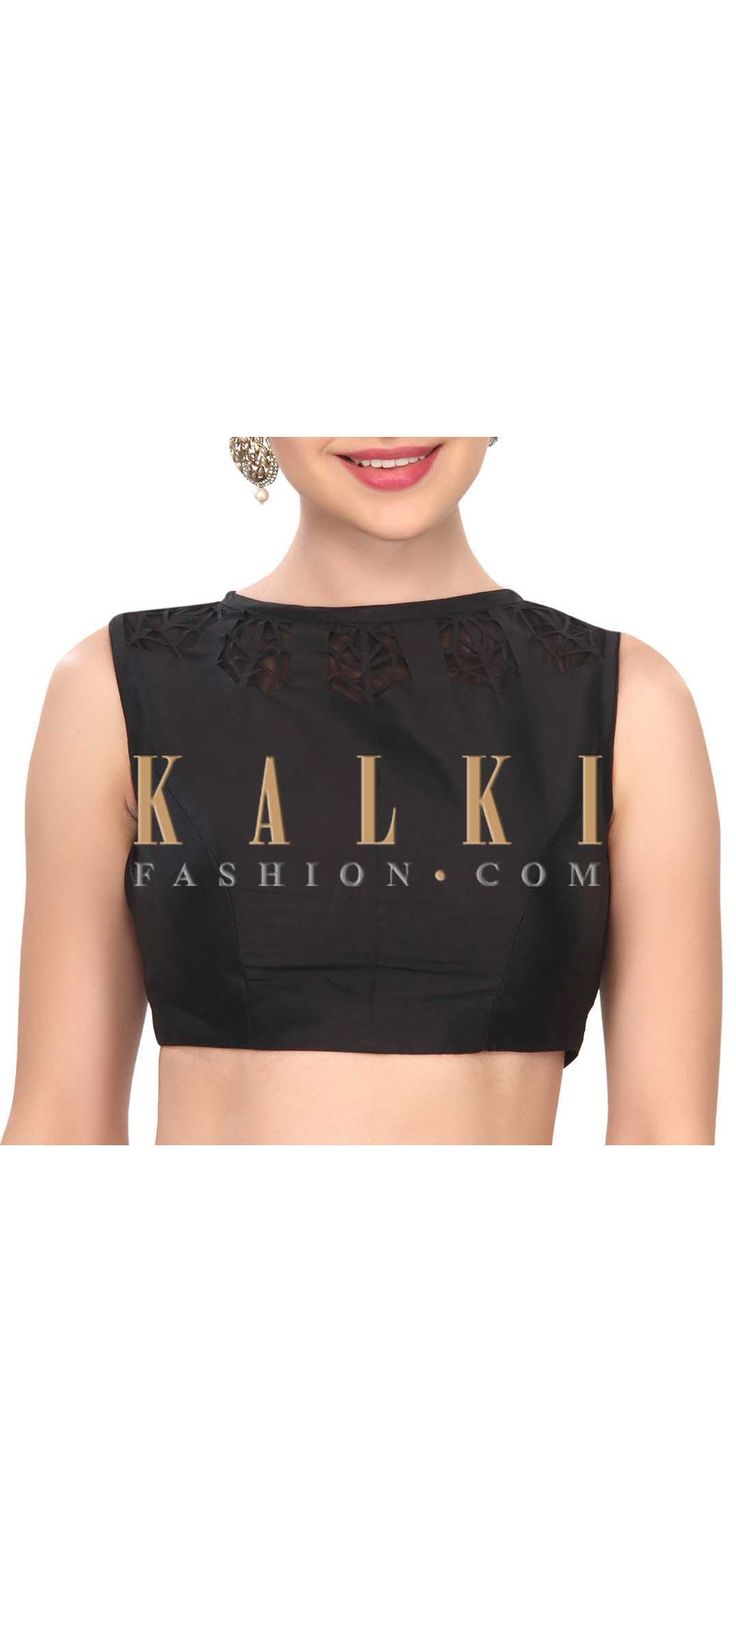 Buy this Western style black laser cut blouse only on Kalki